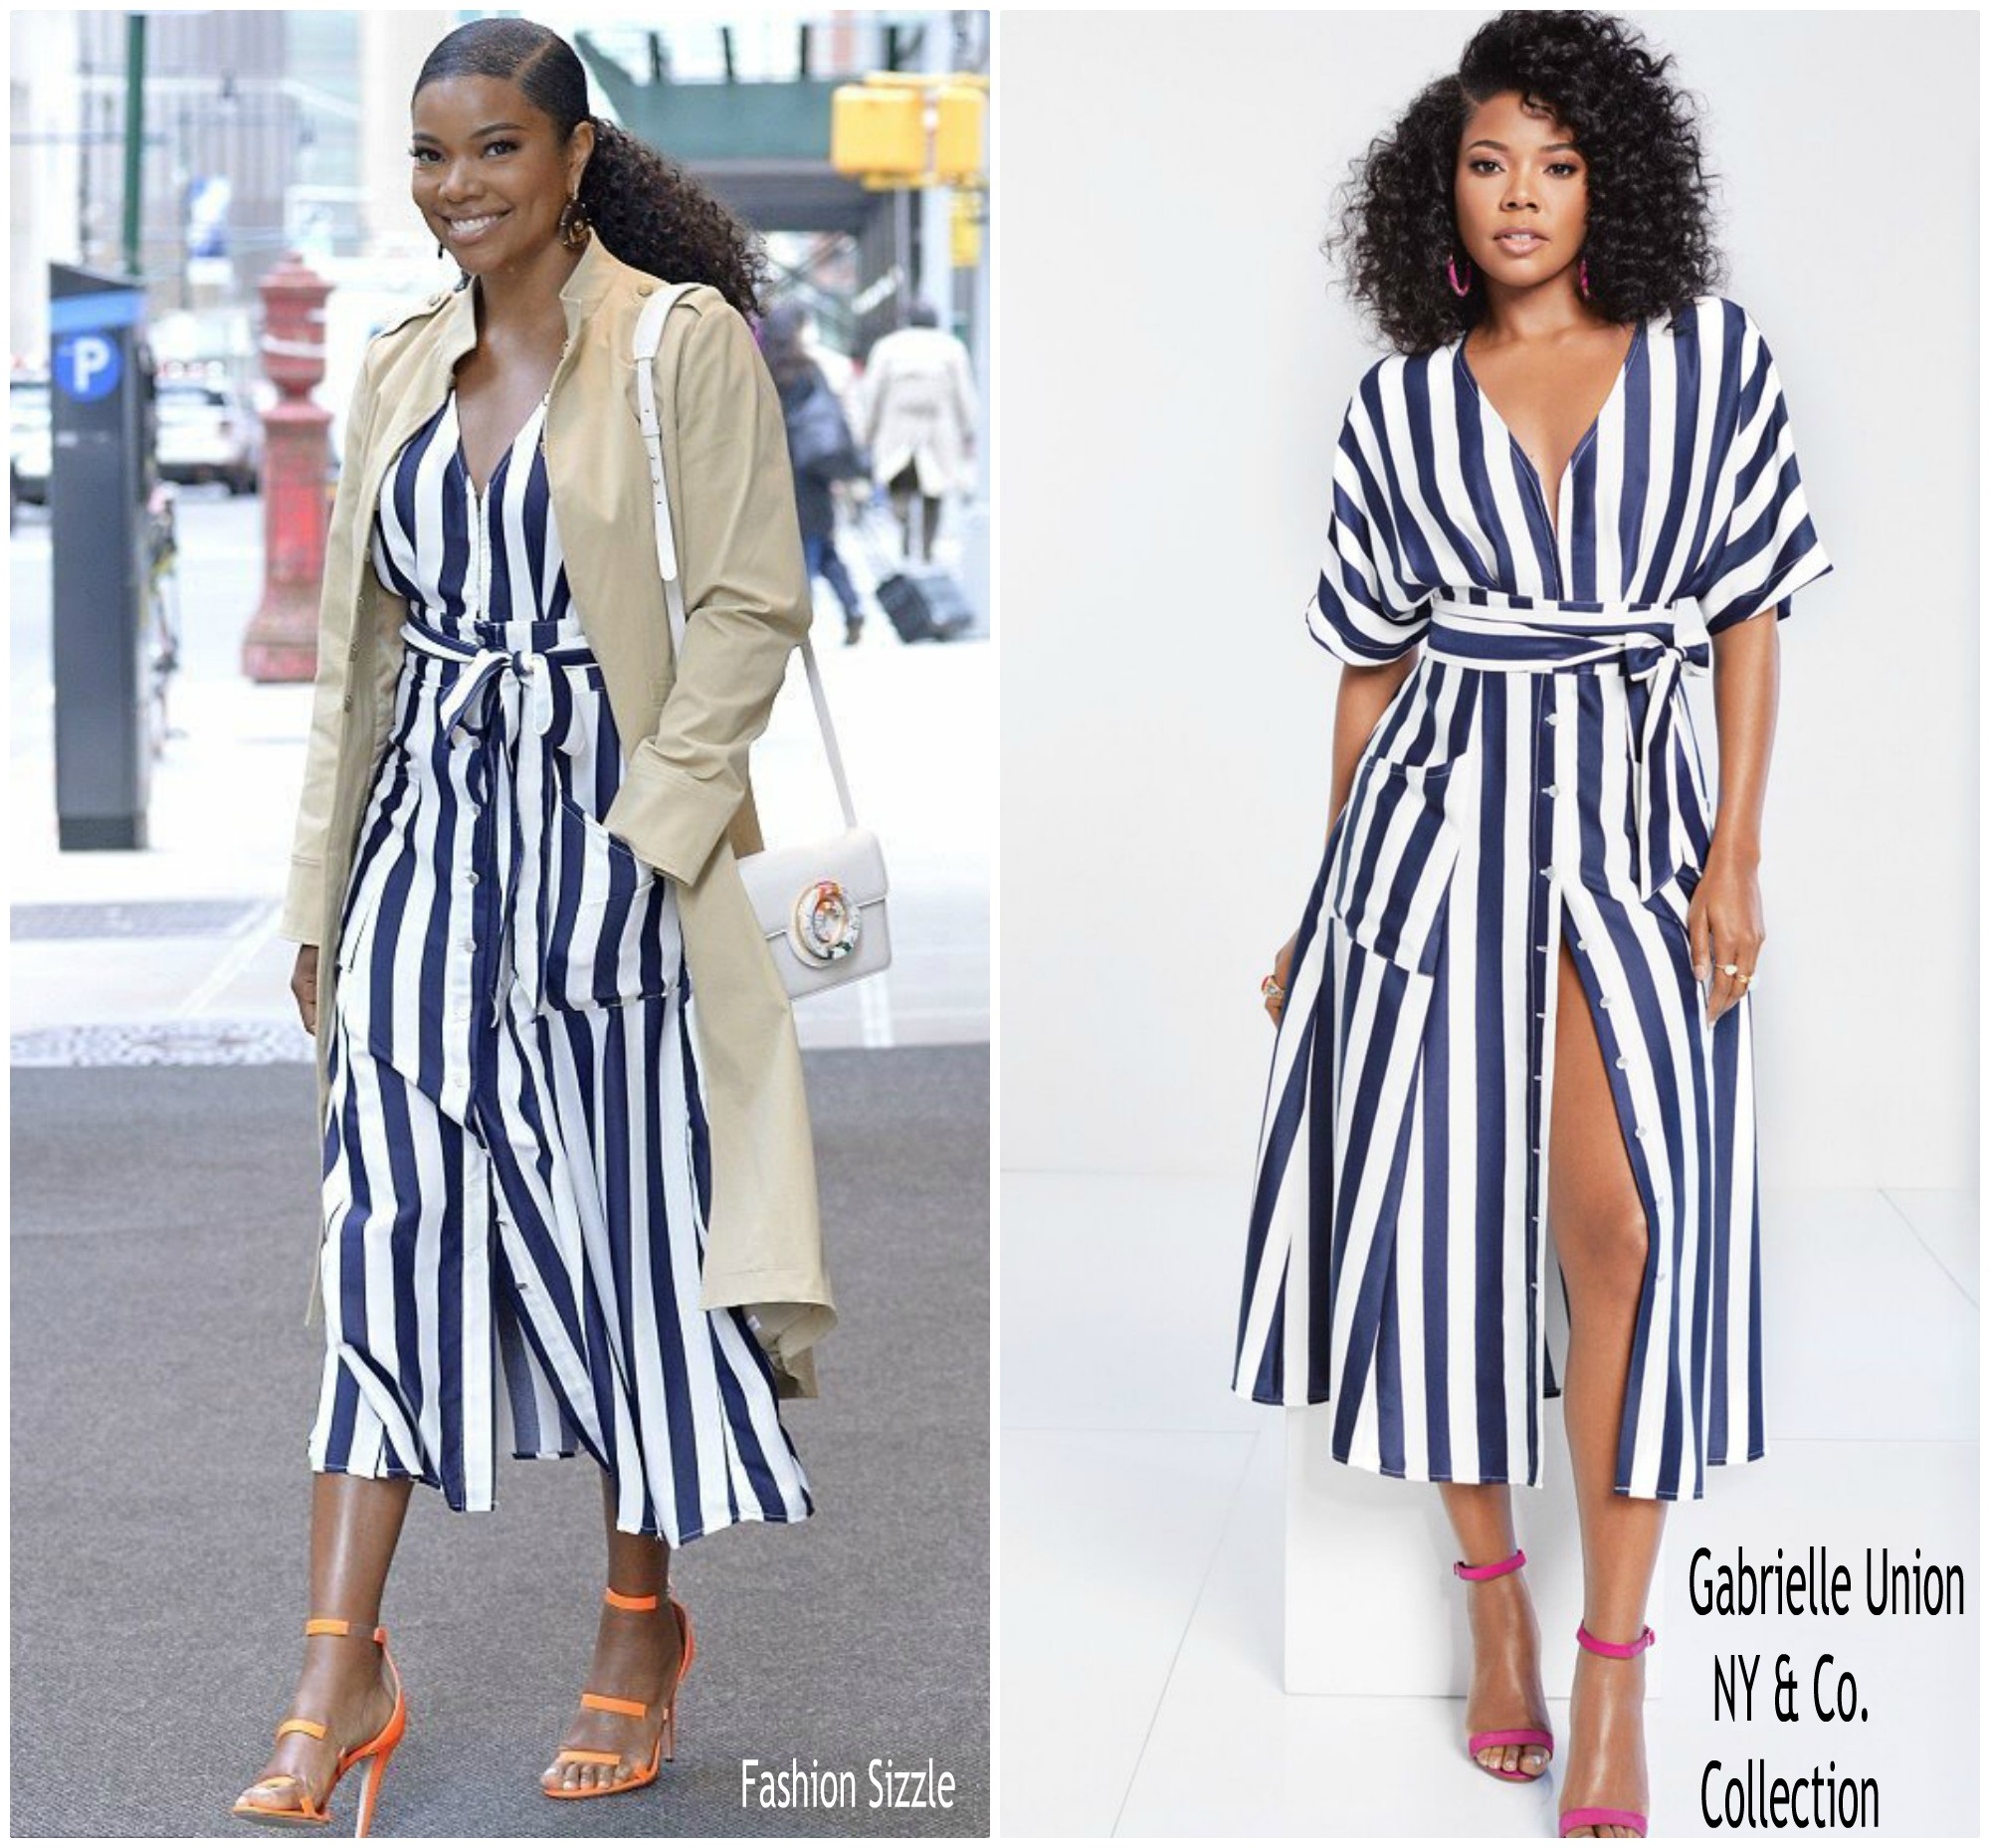 b13a67eff1f Gabrielle Union  In New York   Co.   Today Show - Fashionsizzle